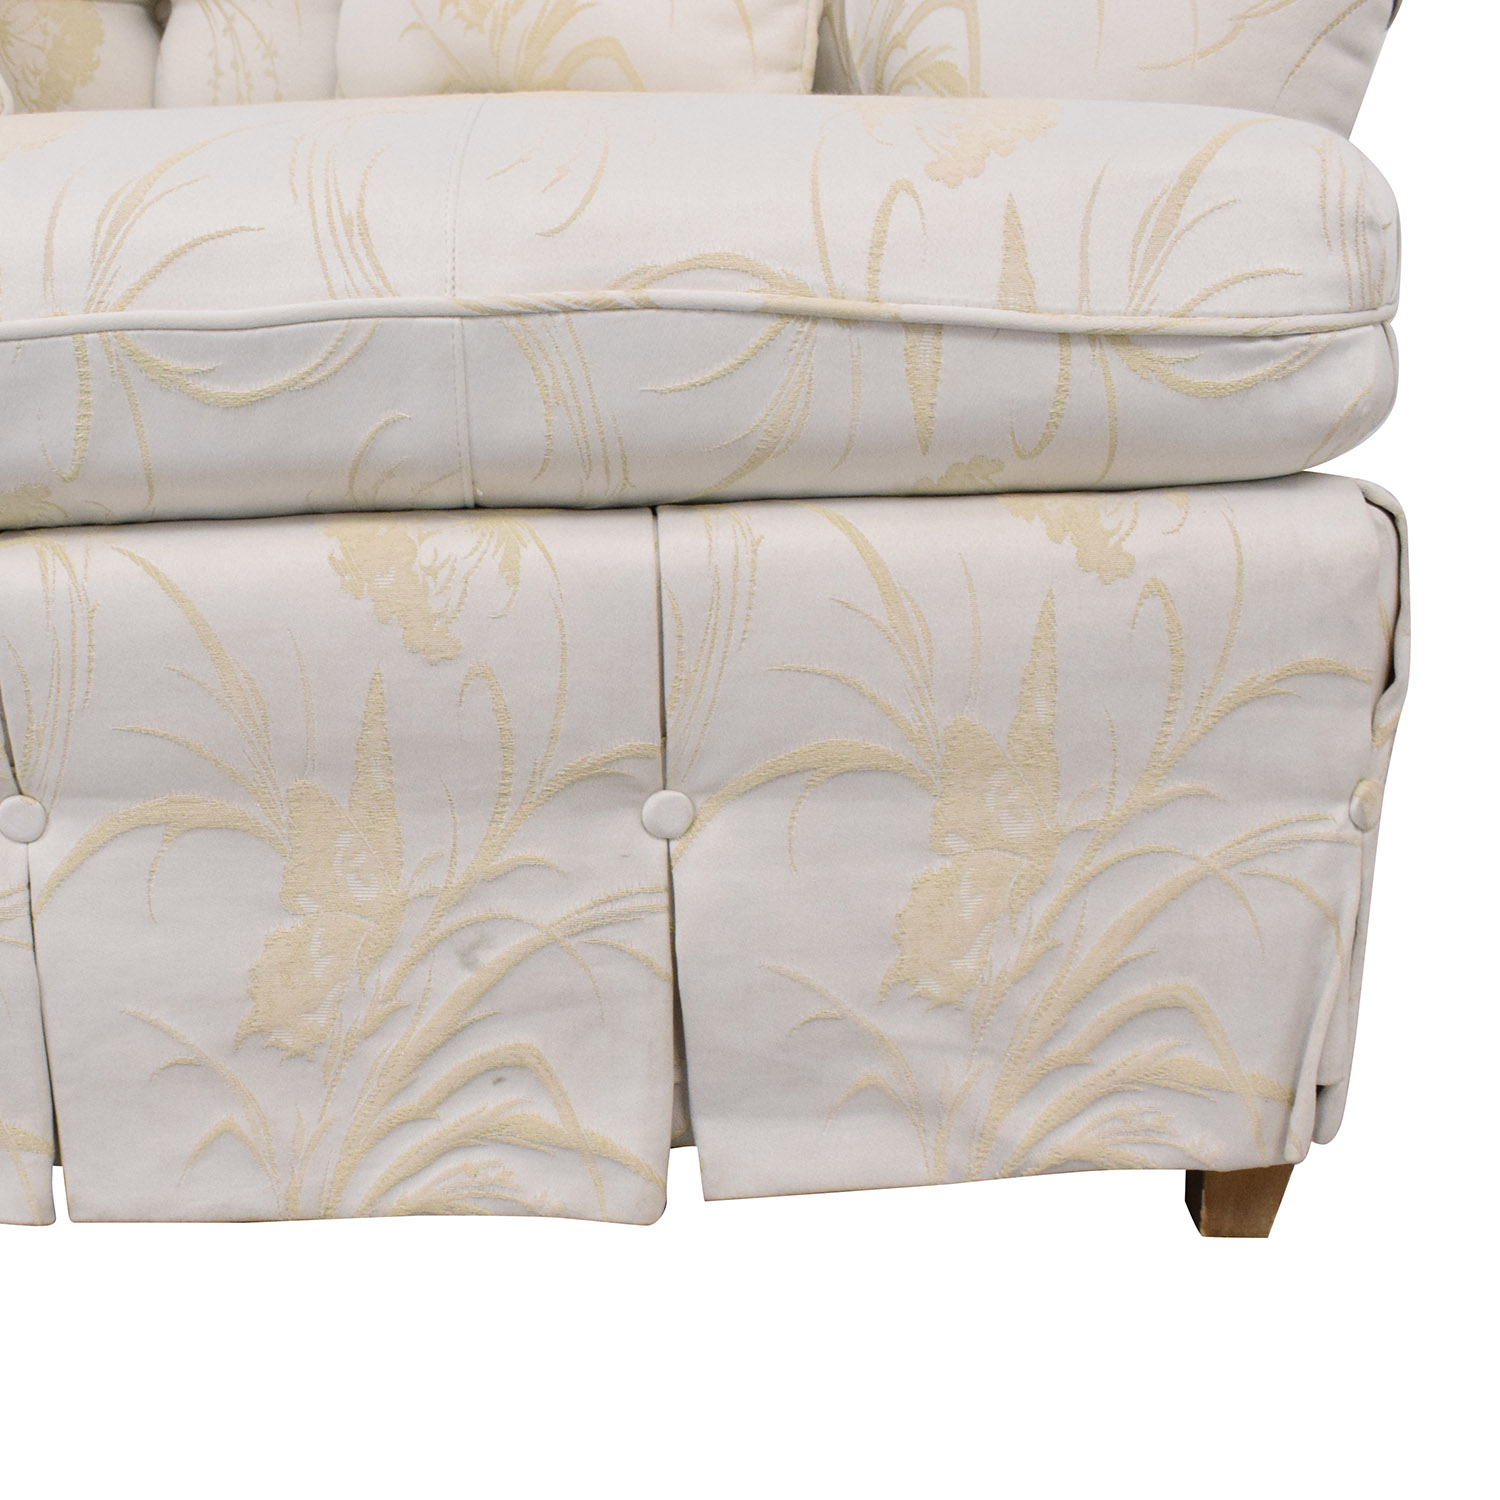 Key City Furniture Key City Furniture Tufted Sofa